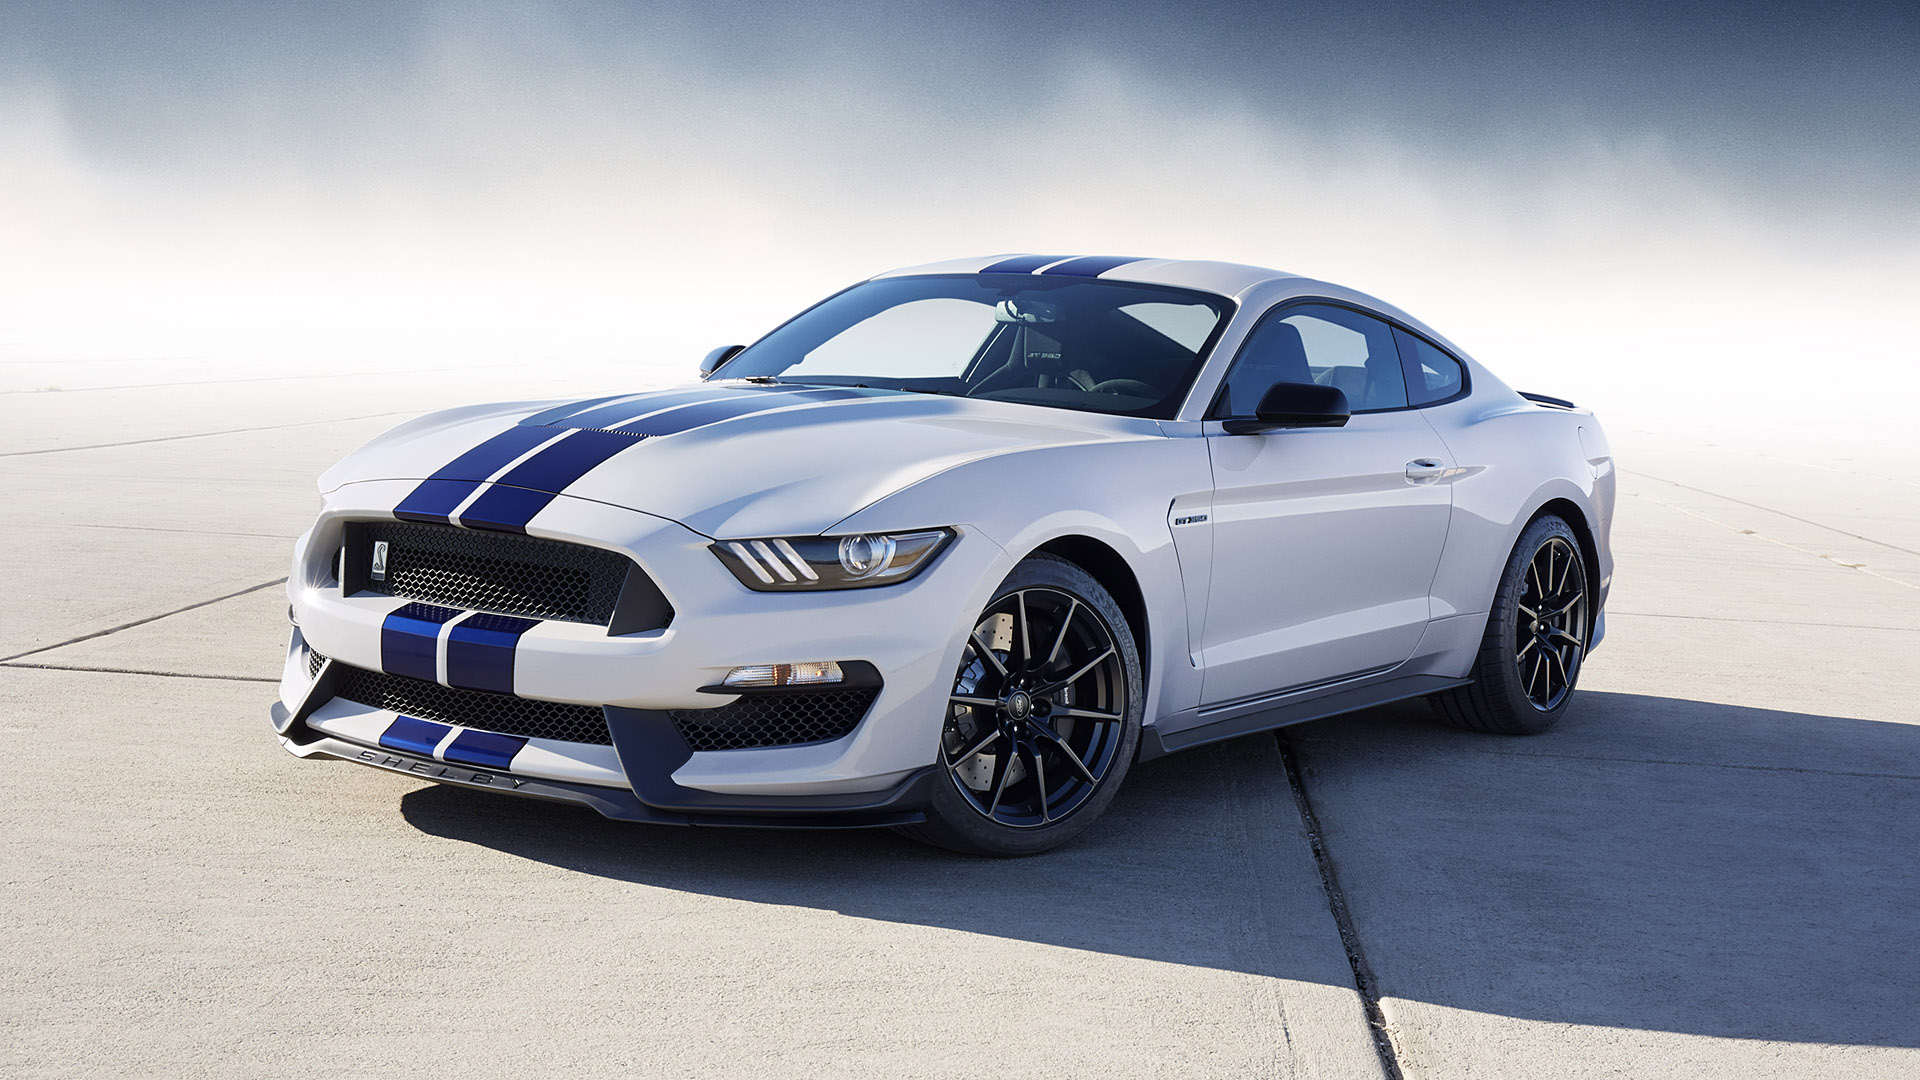 1920x1080 - Shelby Mustang GT 350 Wallpapers 16